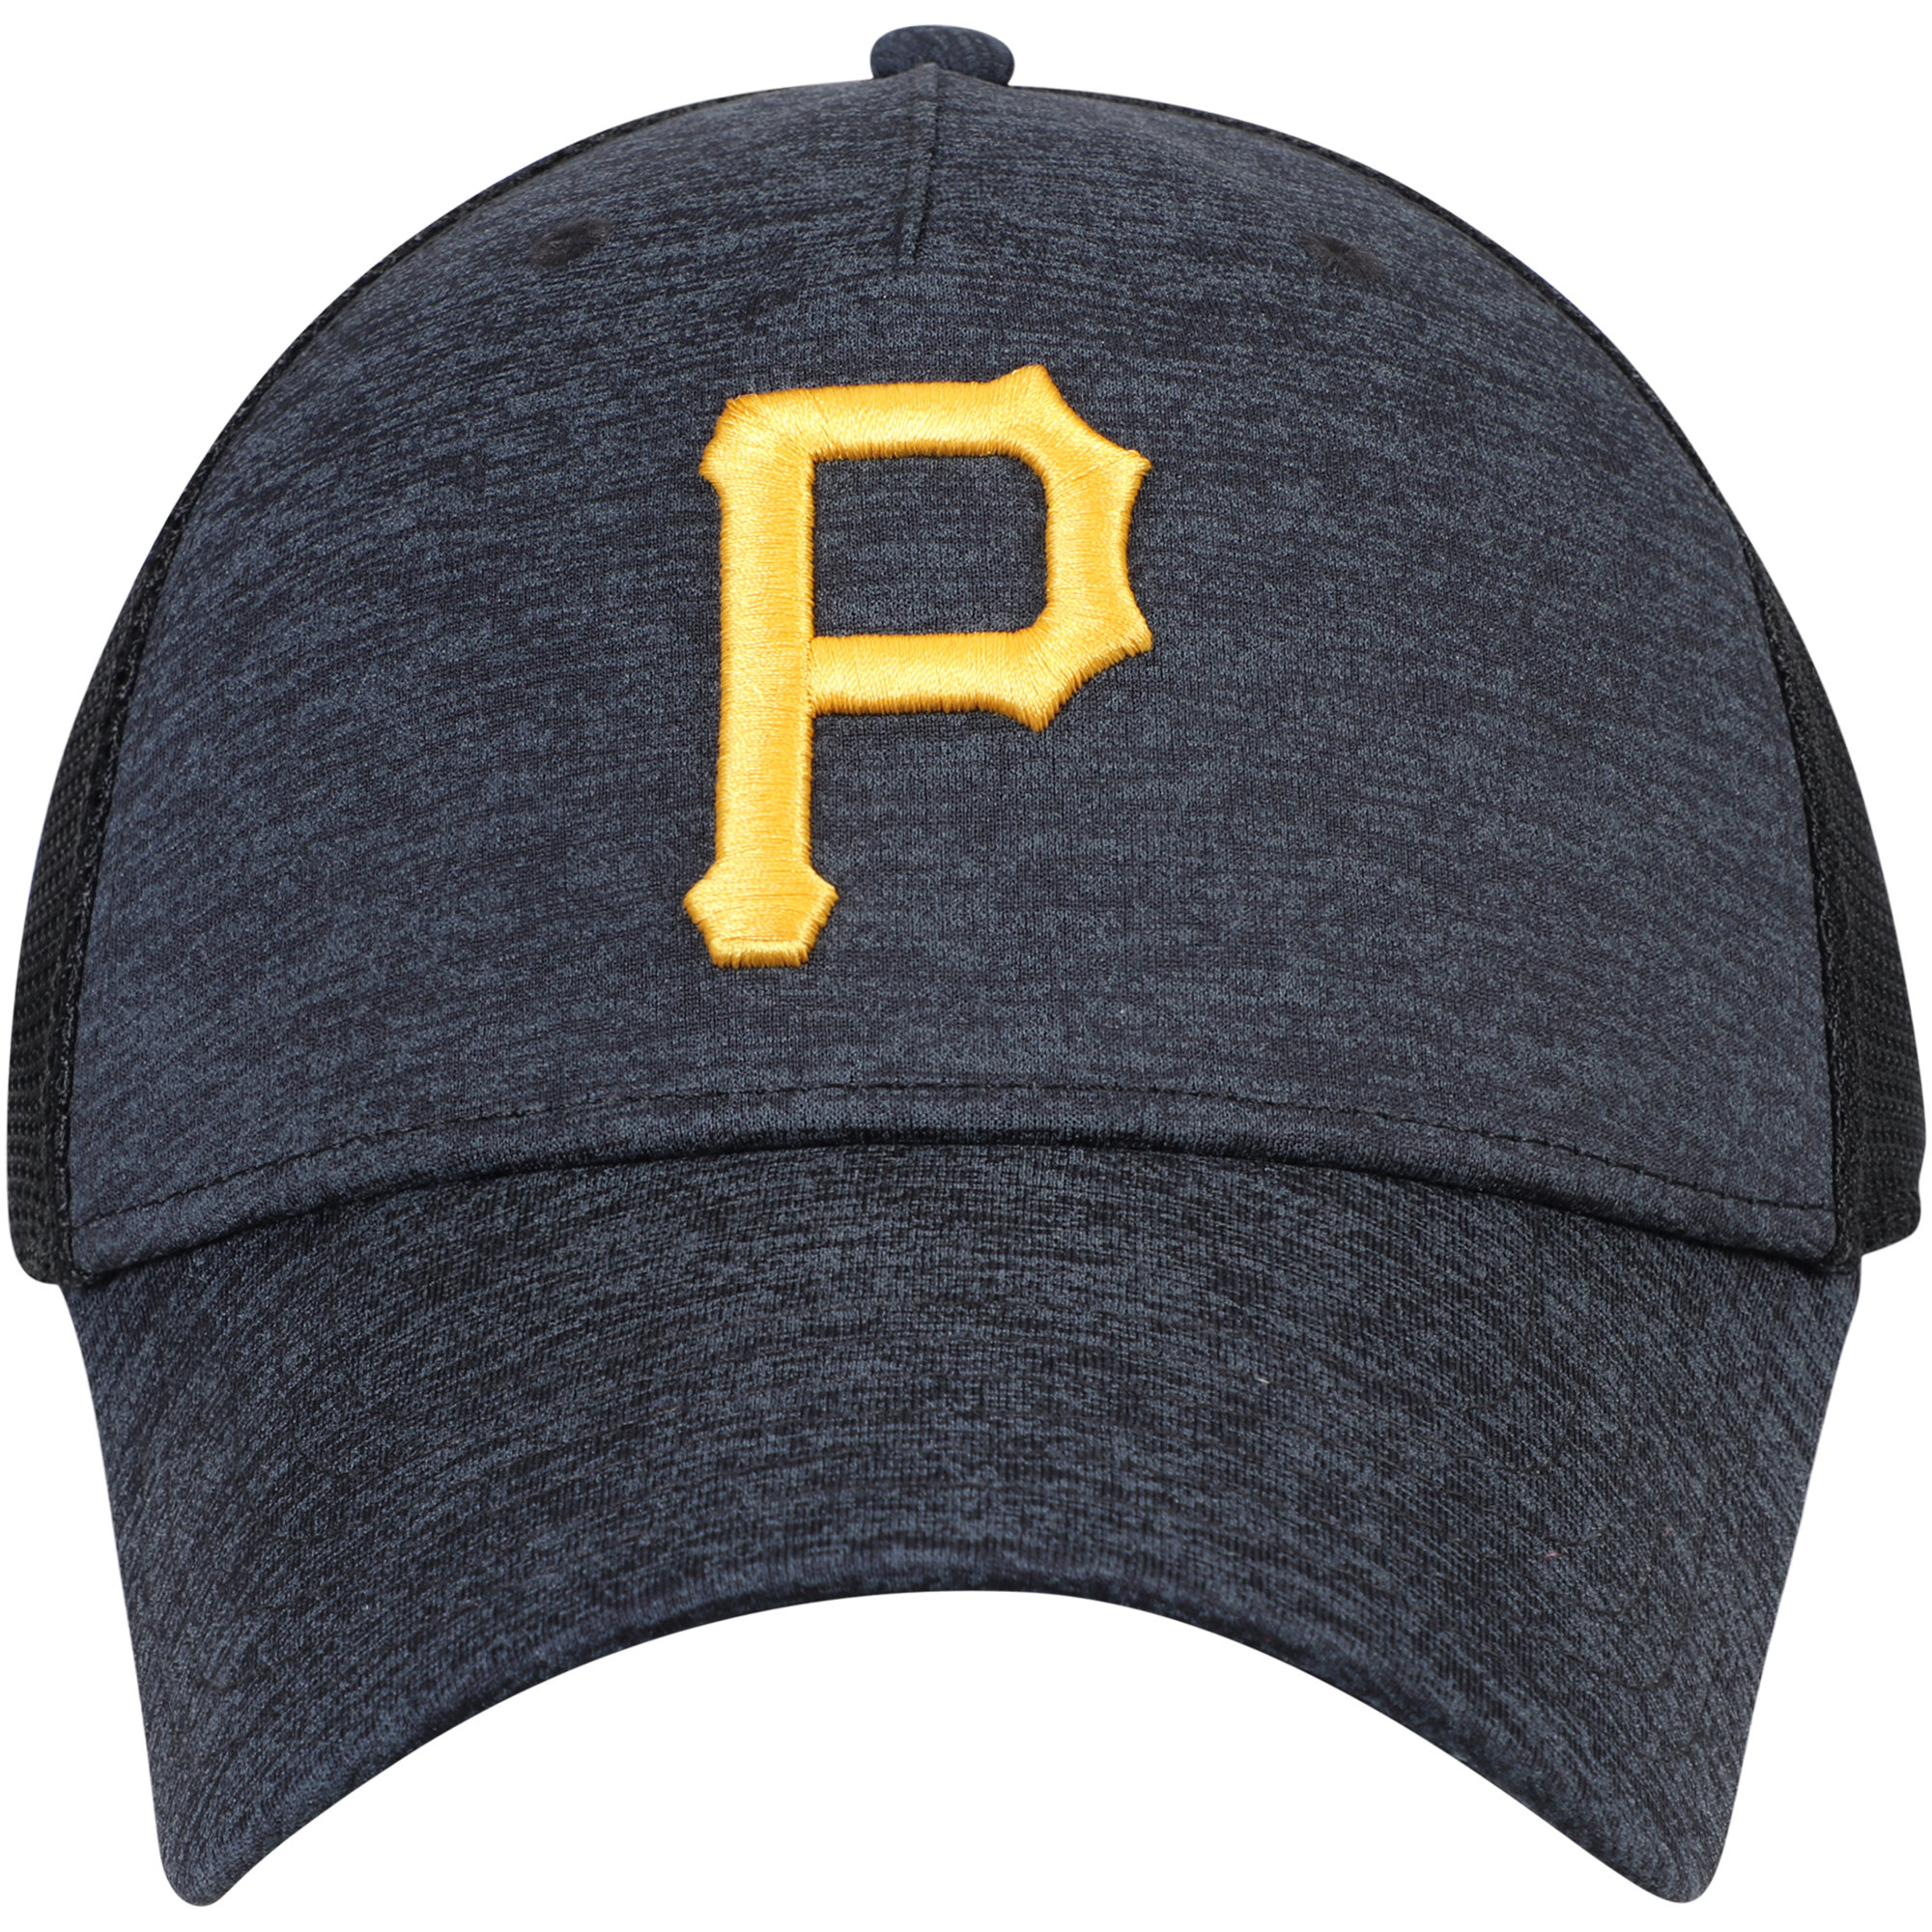 quality design b2134 f4ed0 Pittsburgh Pirates Under Armour Black Armour Twist Closer Trucker  Performance Adjustable Hat - OSFA - Walmart.com